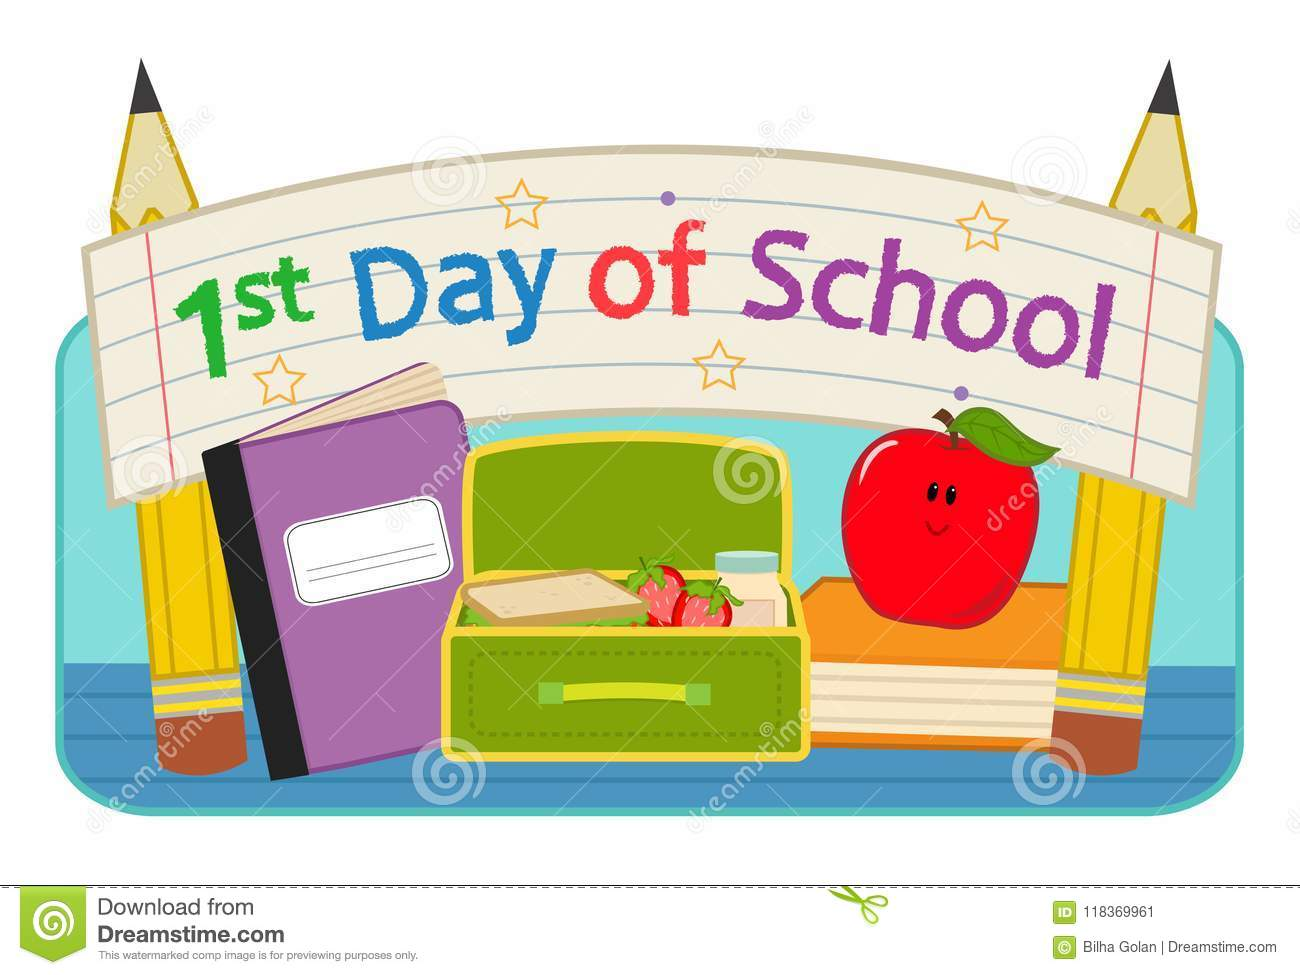 First Day School clip.